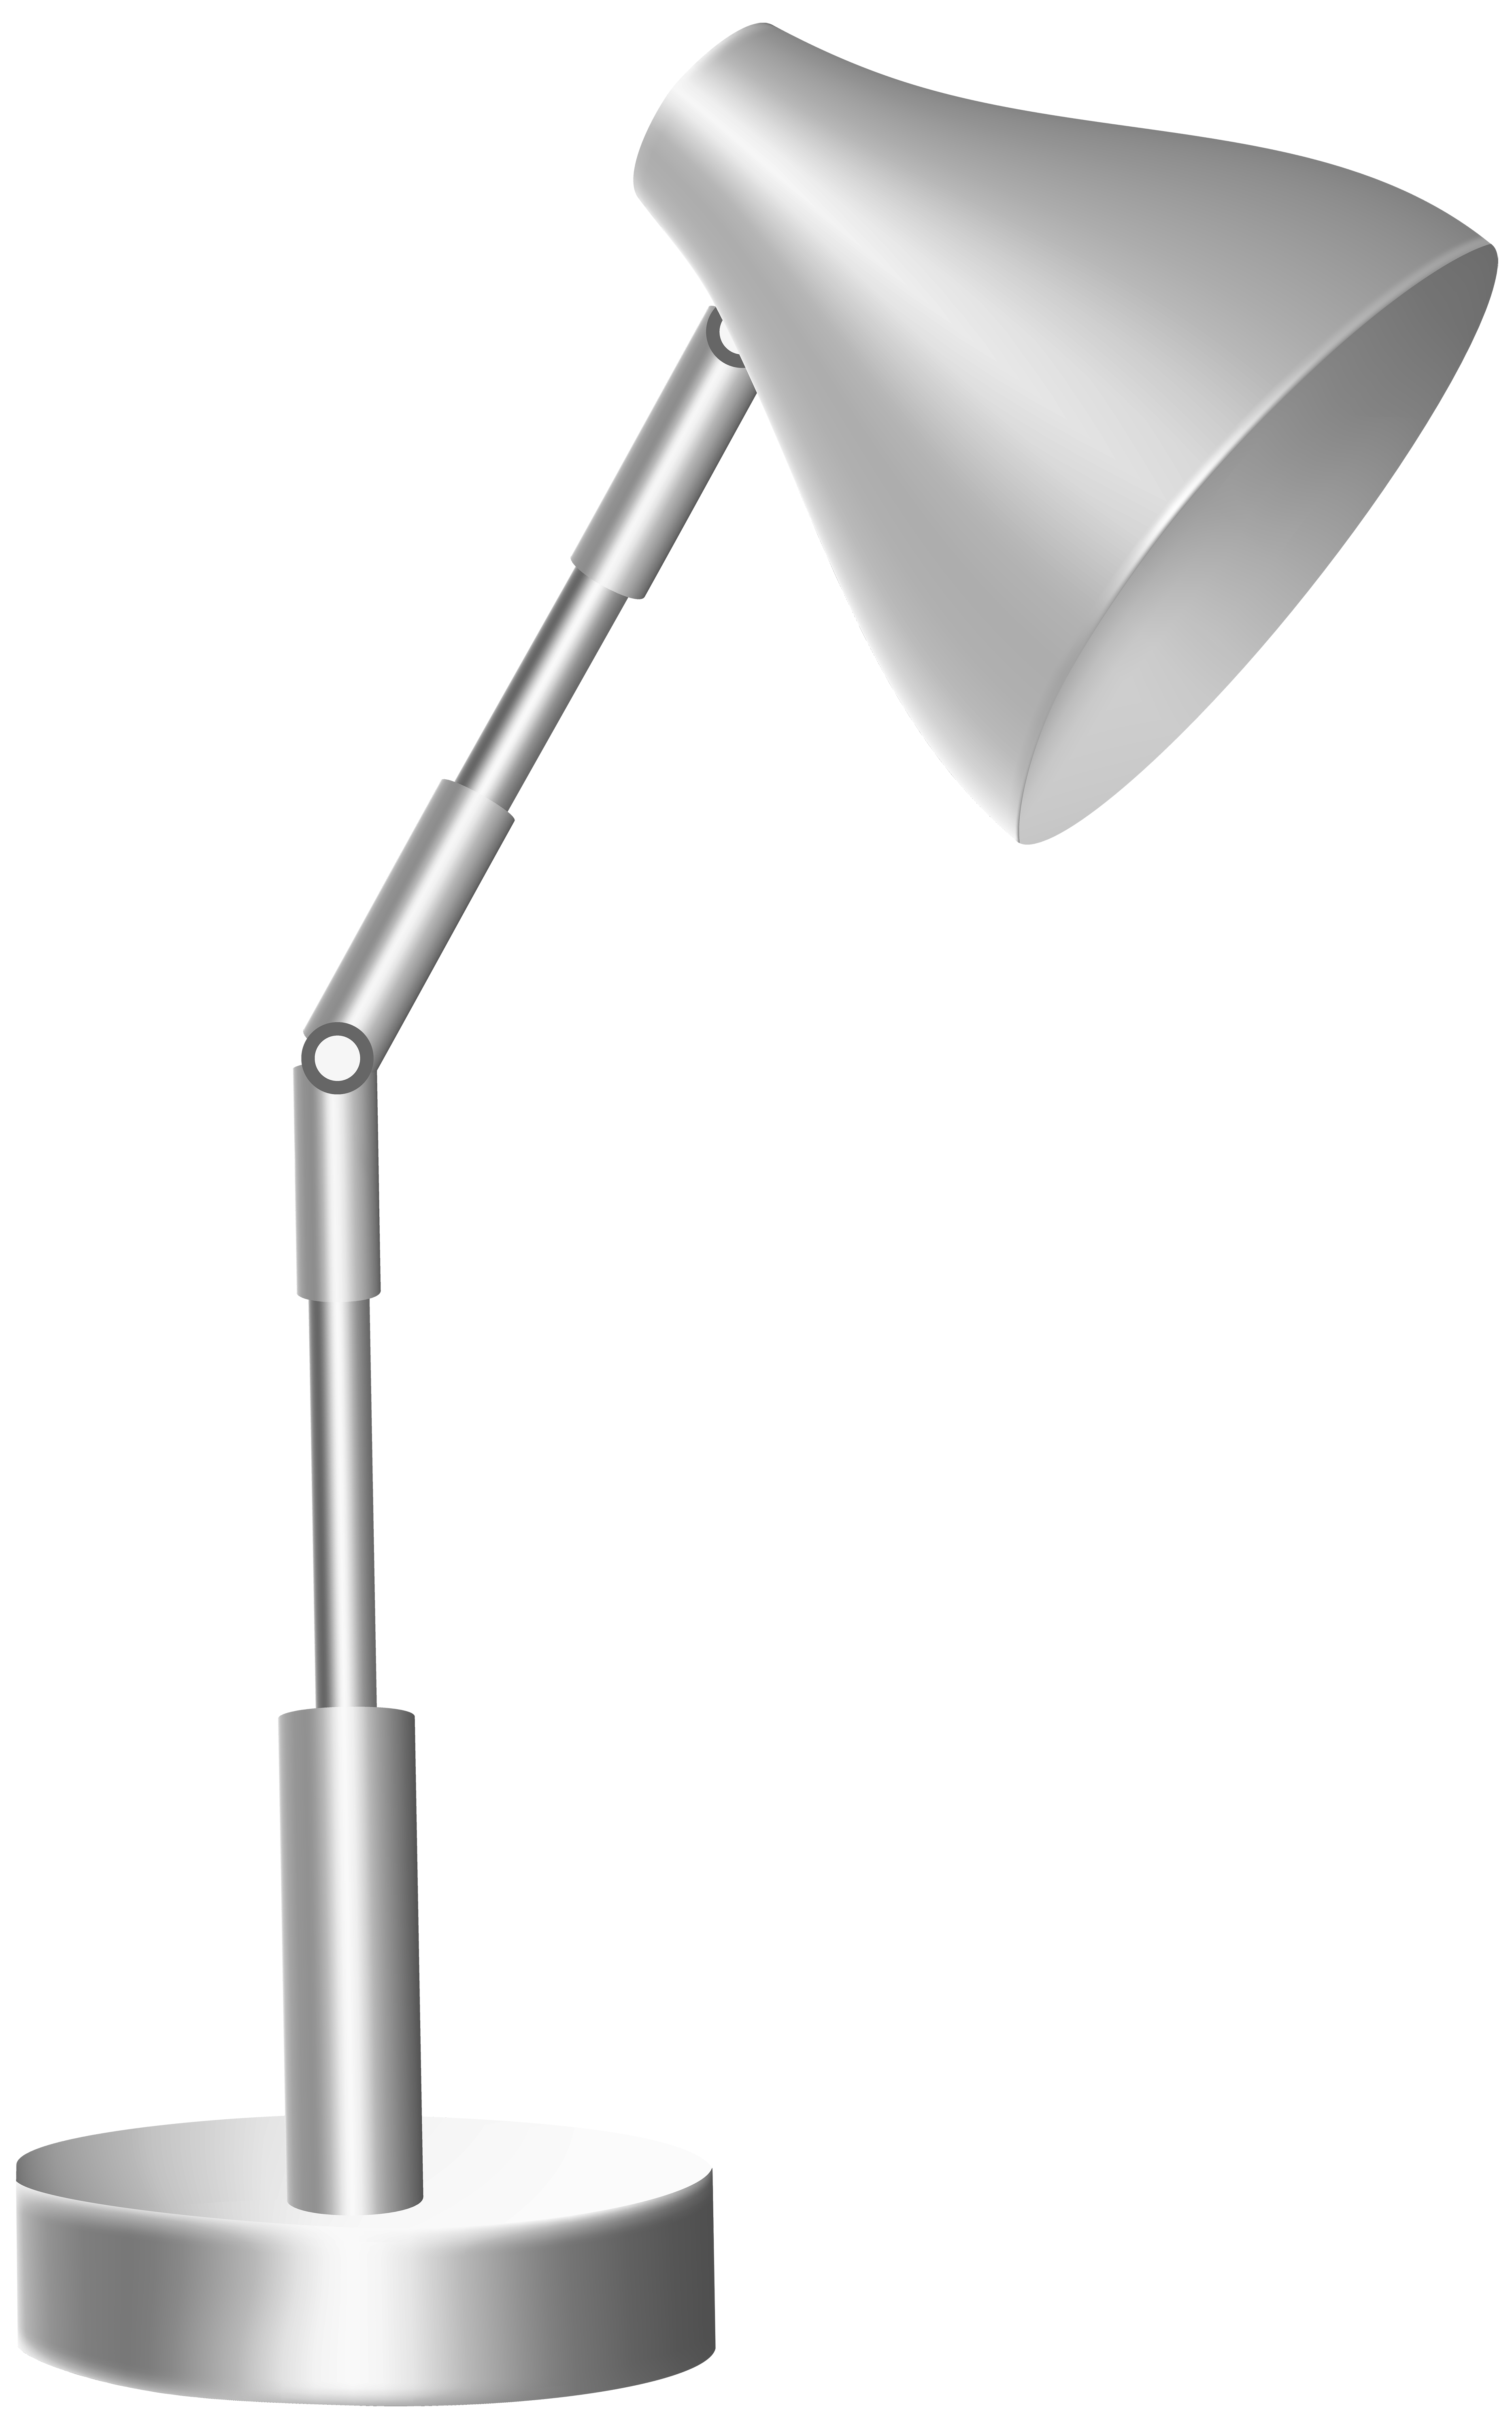 Desk lamp png. Silver clip art best